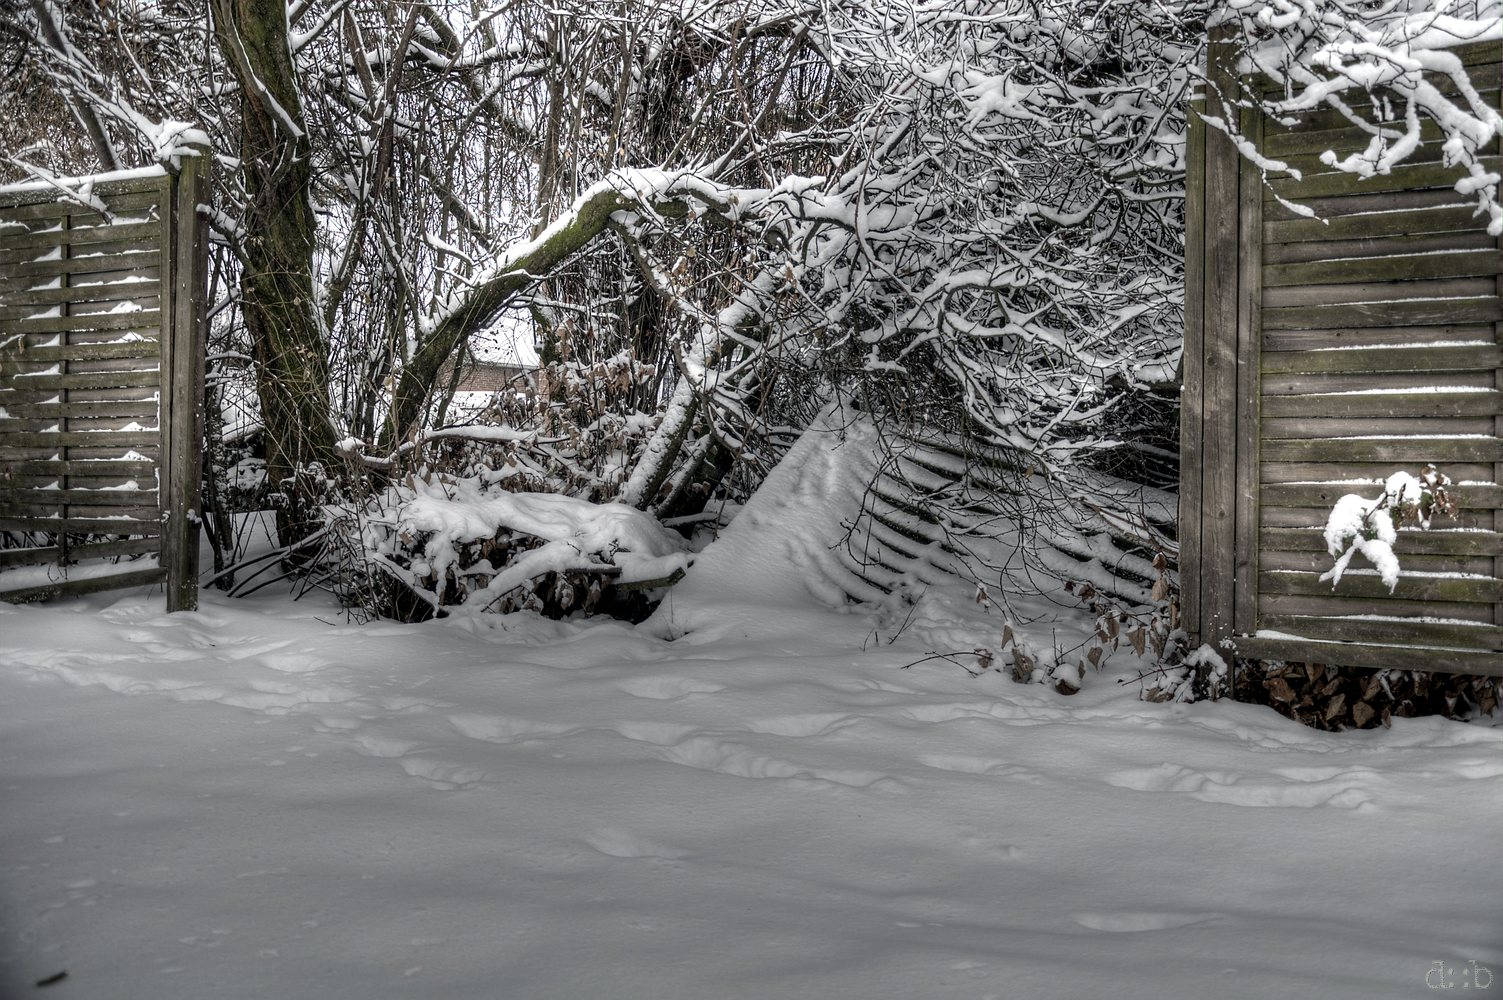 Snow loads seem to have crashed into an instable garden fence.